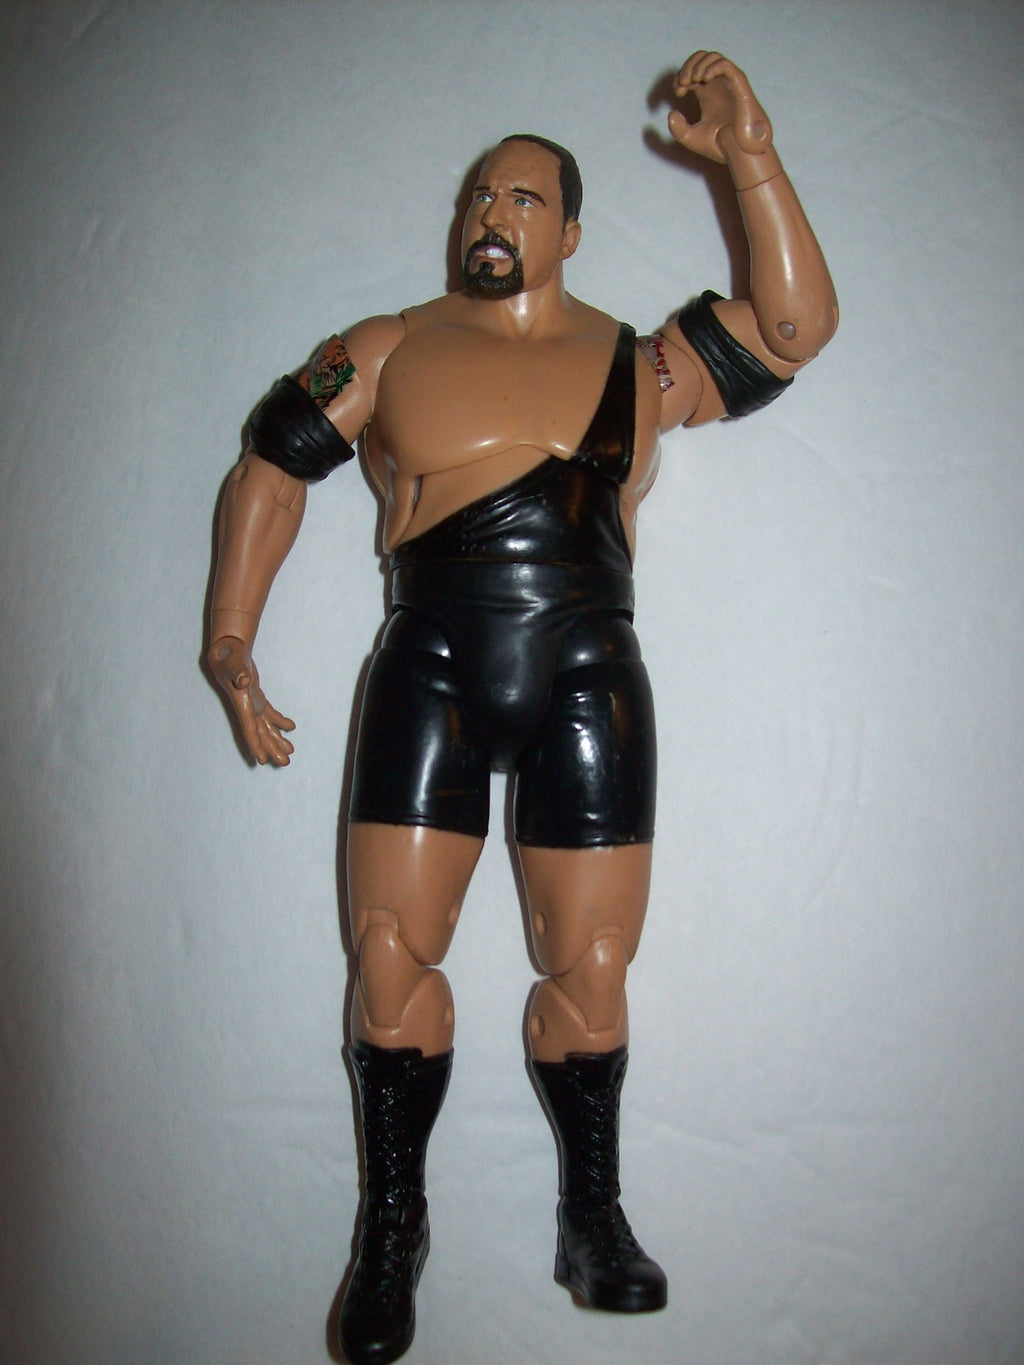 Big Show WWE Wrestling Action Figure - We Got Character